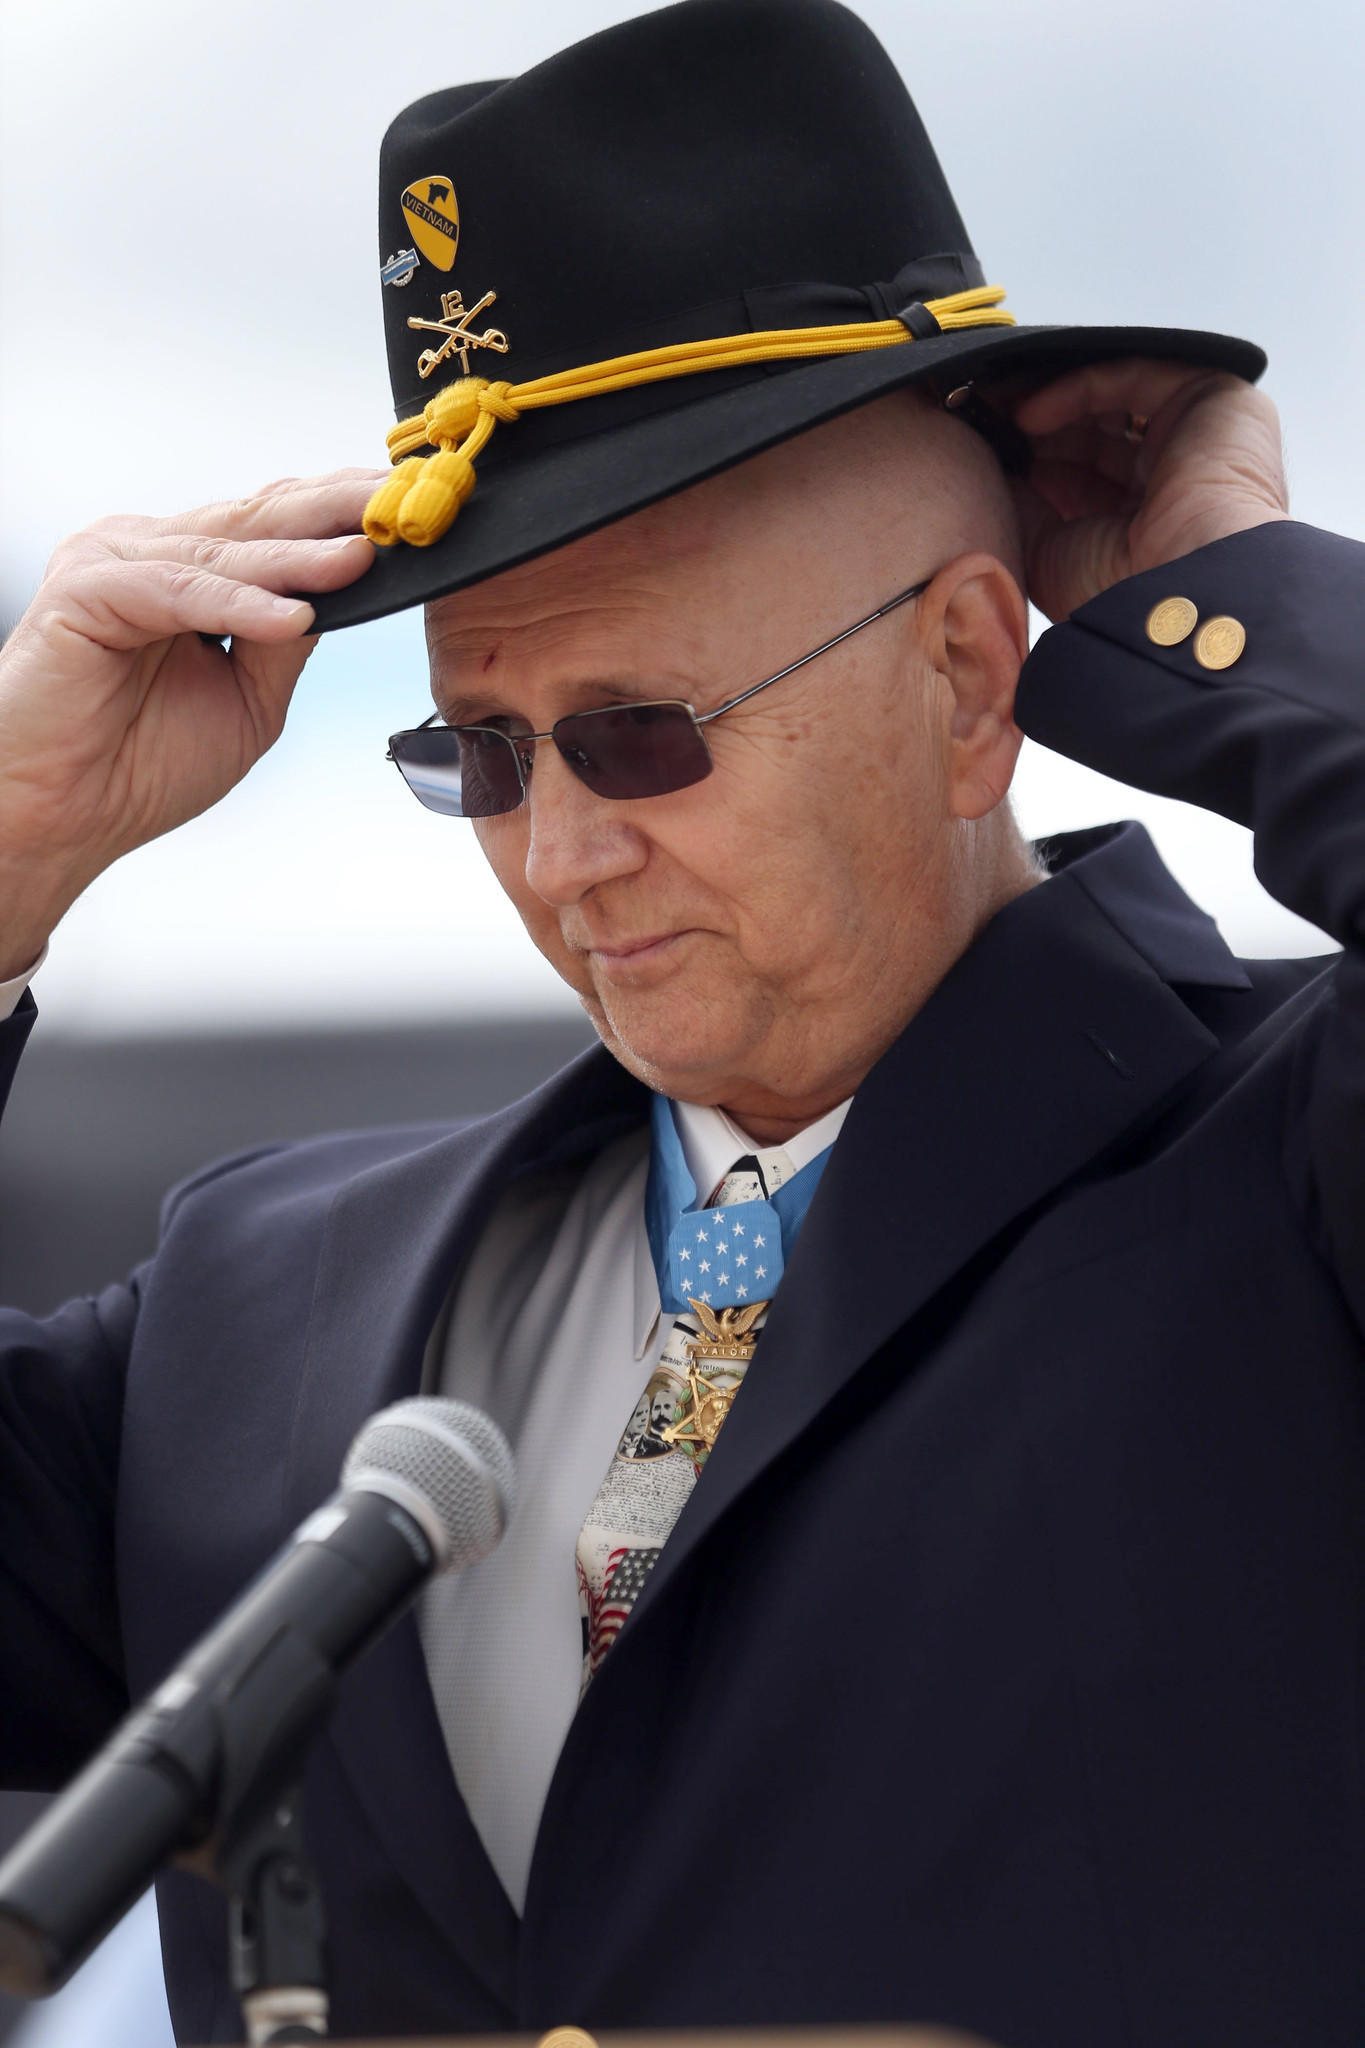 U.S. Army First Sgt. (retired) Allen J. Lynch adjusts his First Cavalry hat.